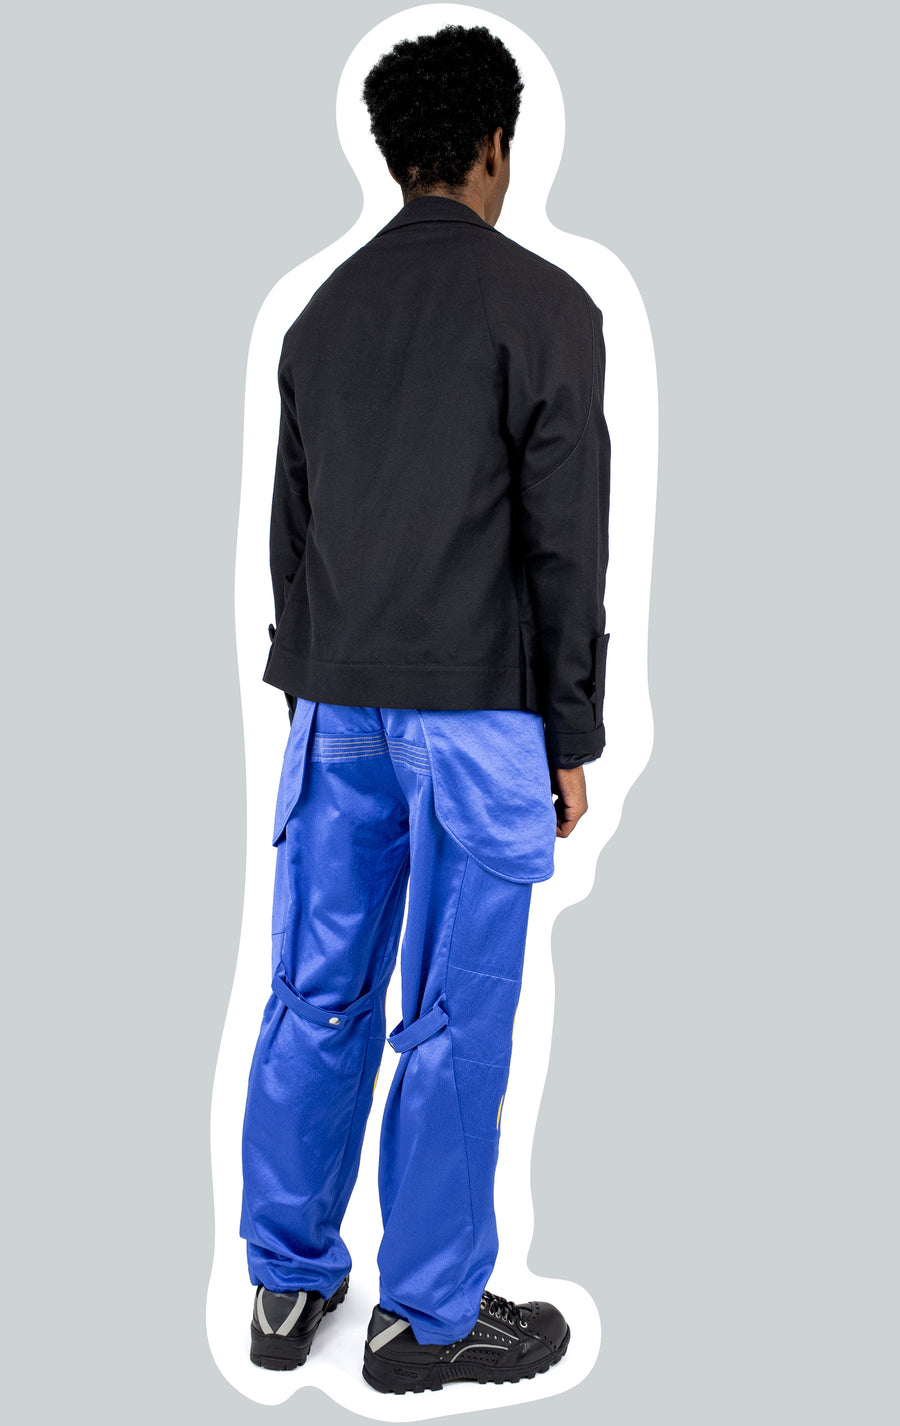 00102021 ARCADIA EMBROIDERED TROUSER BLUE